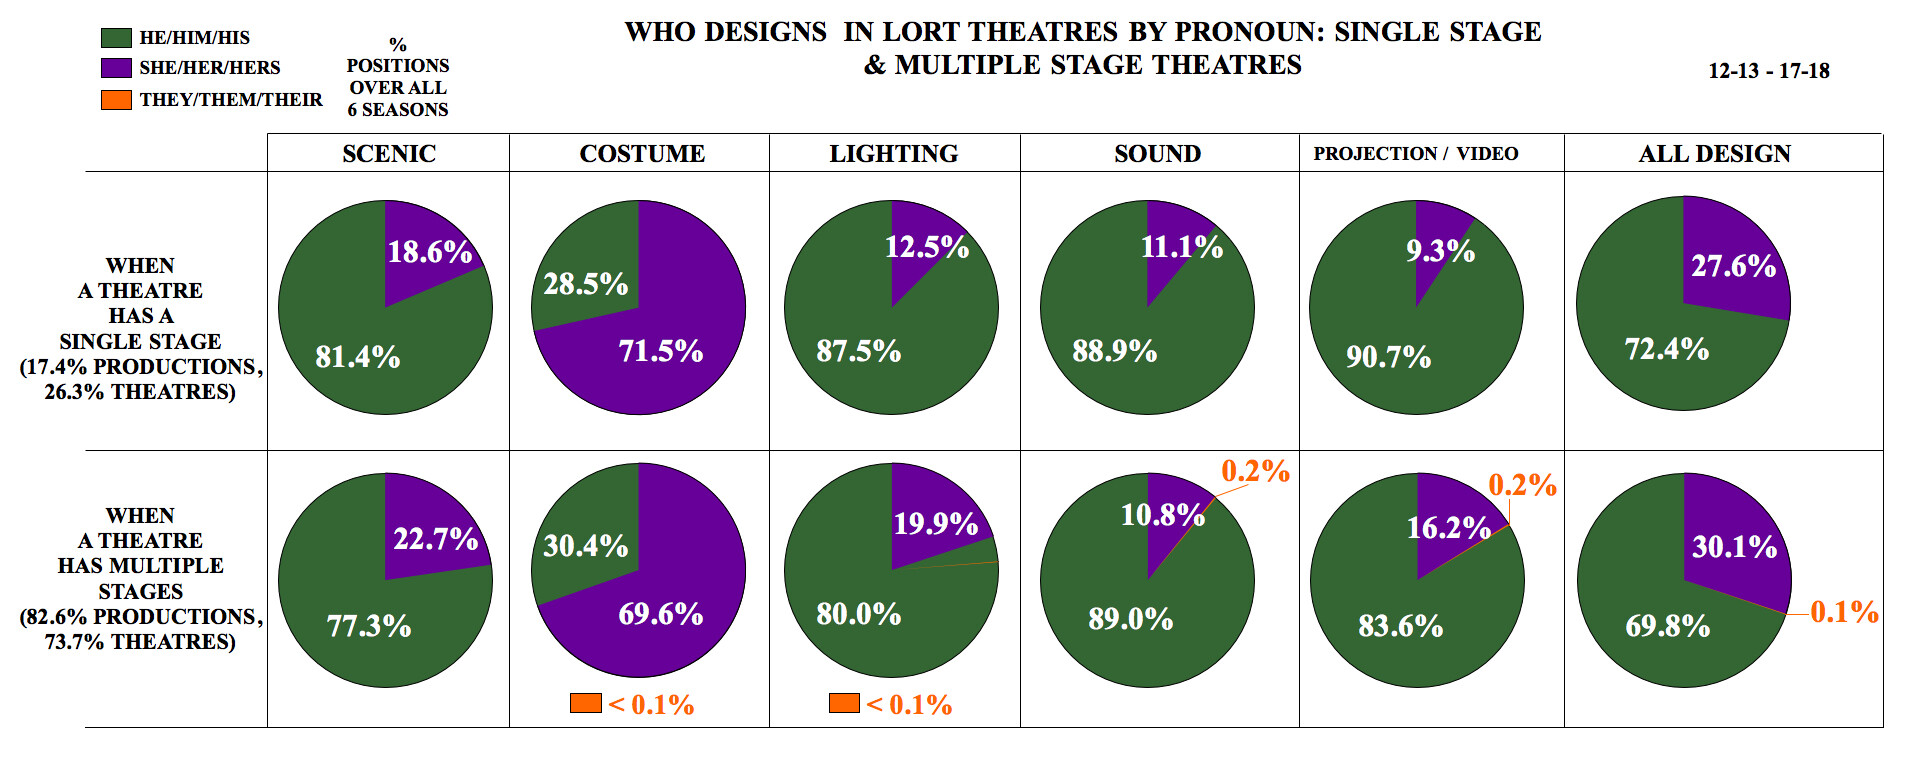 Who Designs in LORT Theatres by Pronoun: Single Stage & Multiple Stage Theatres